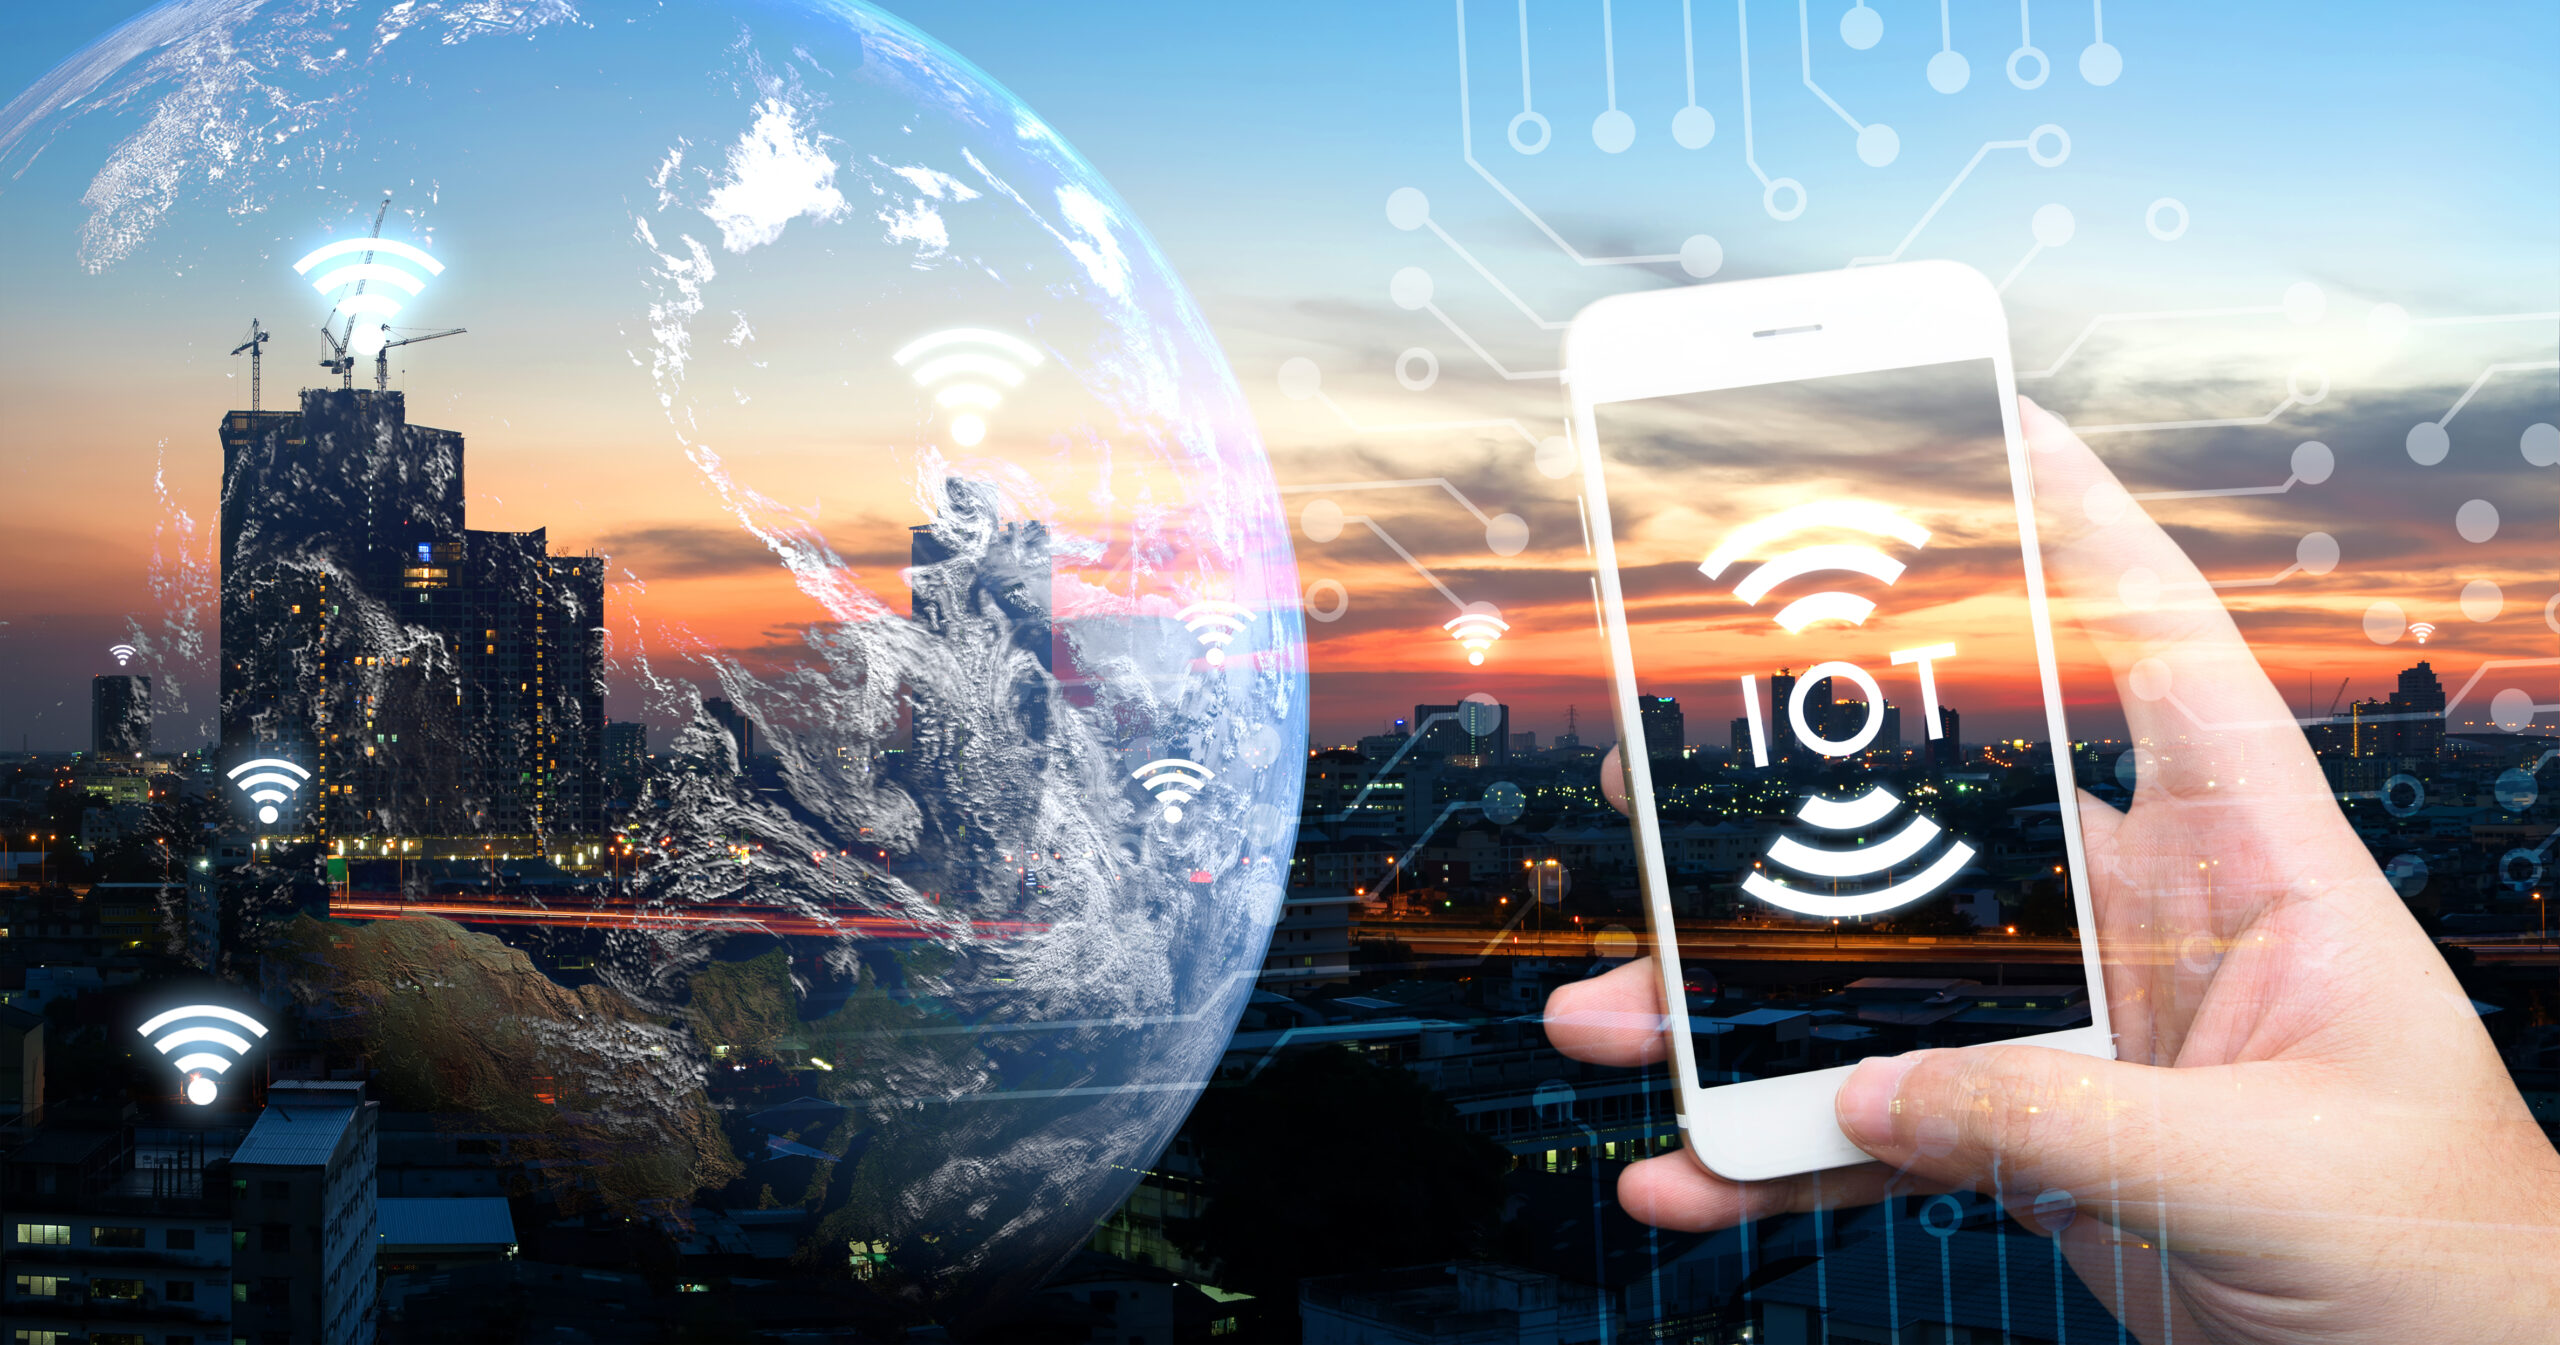 INTERNET OF THINGS FUELS AMERICA 2.0 STOCK